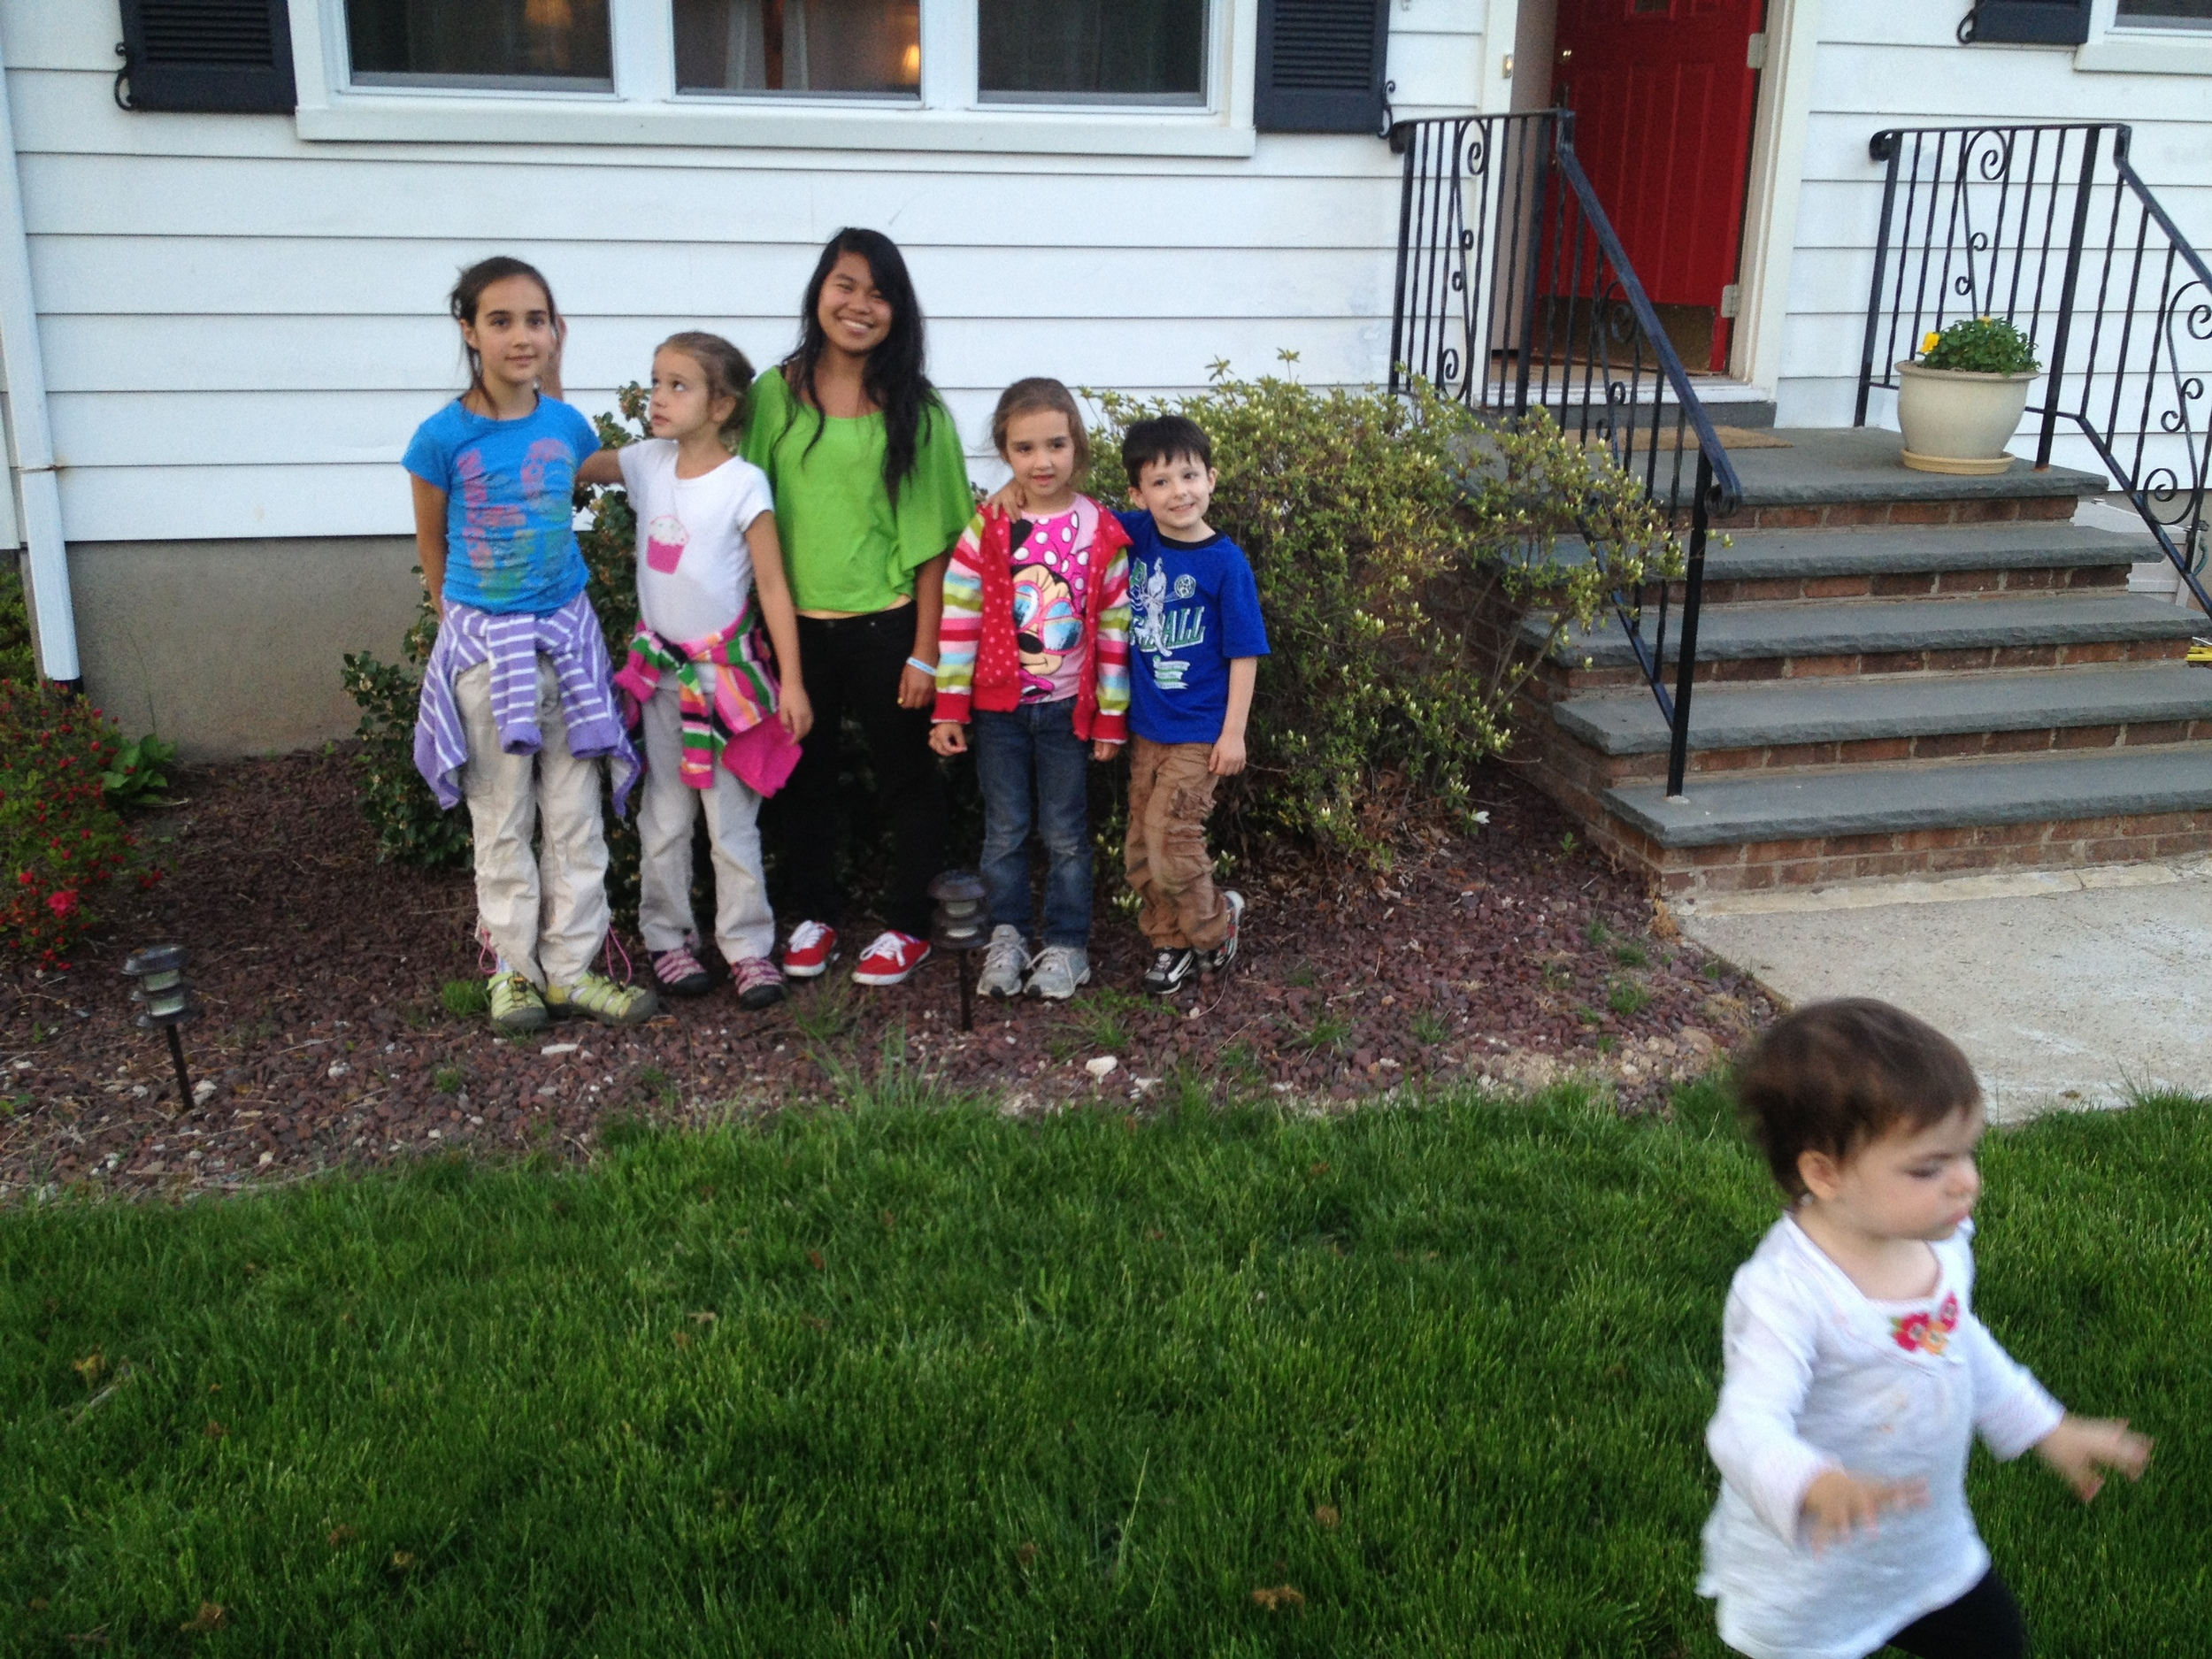 All the kids (and one runaway).